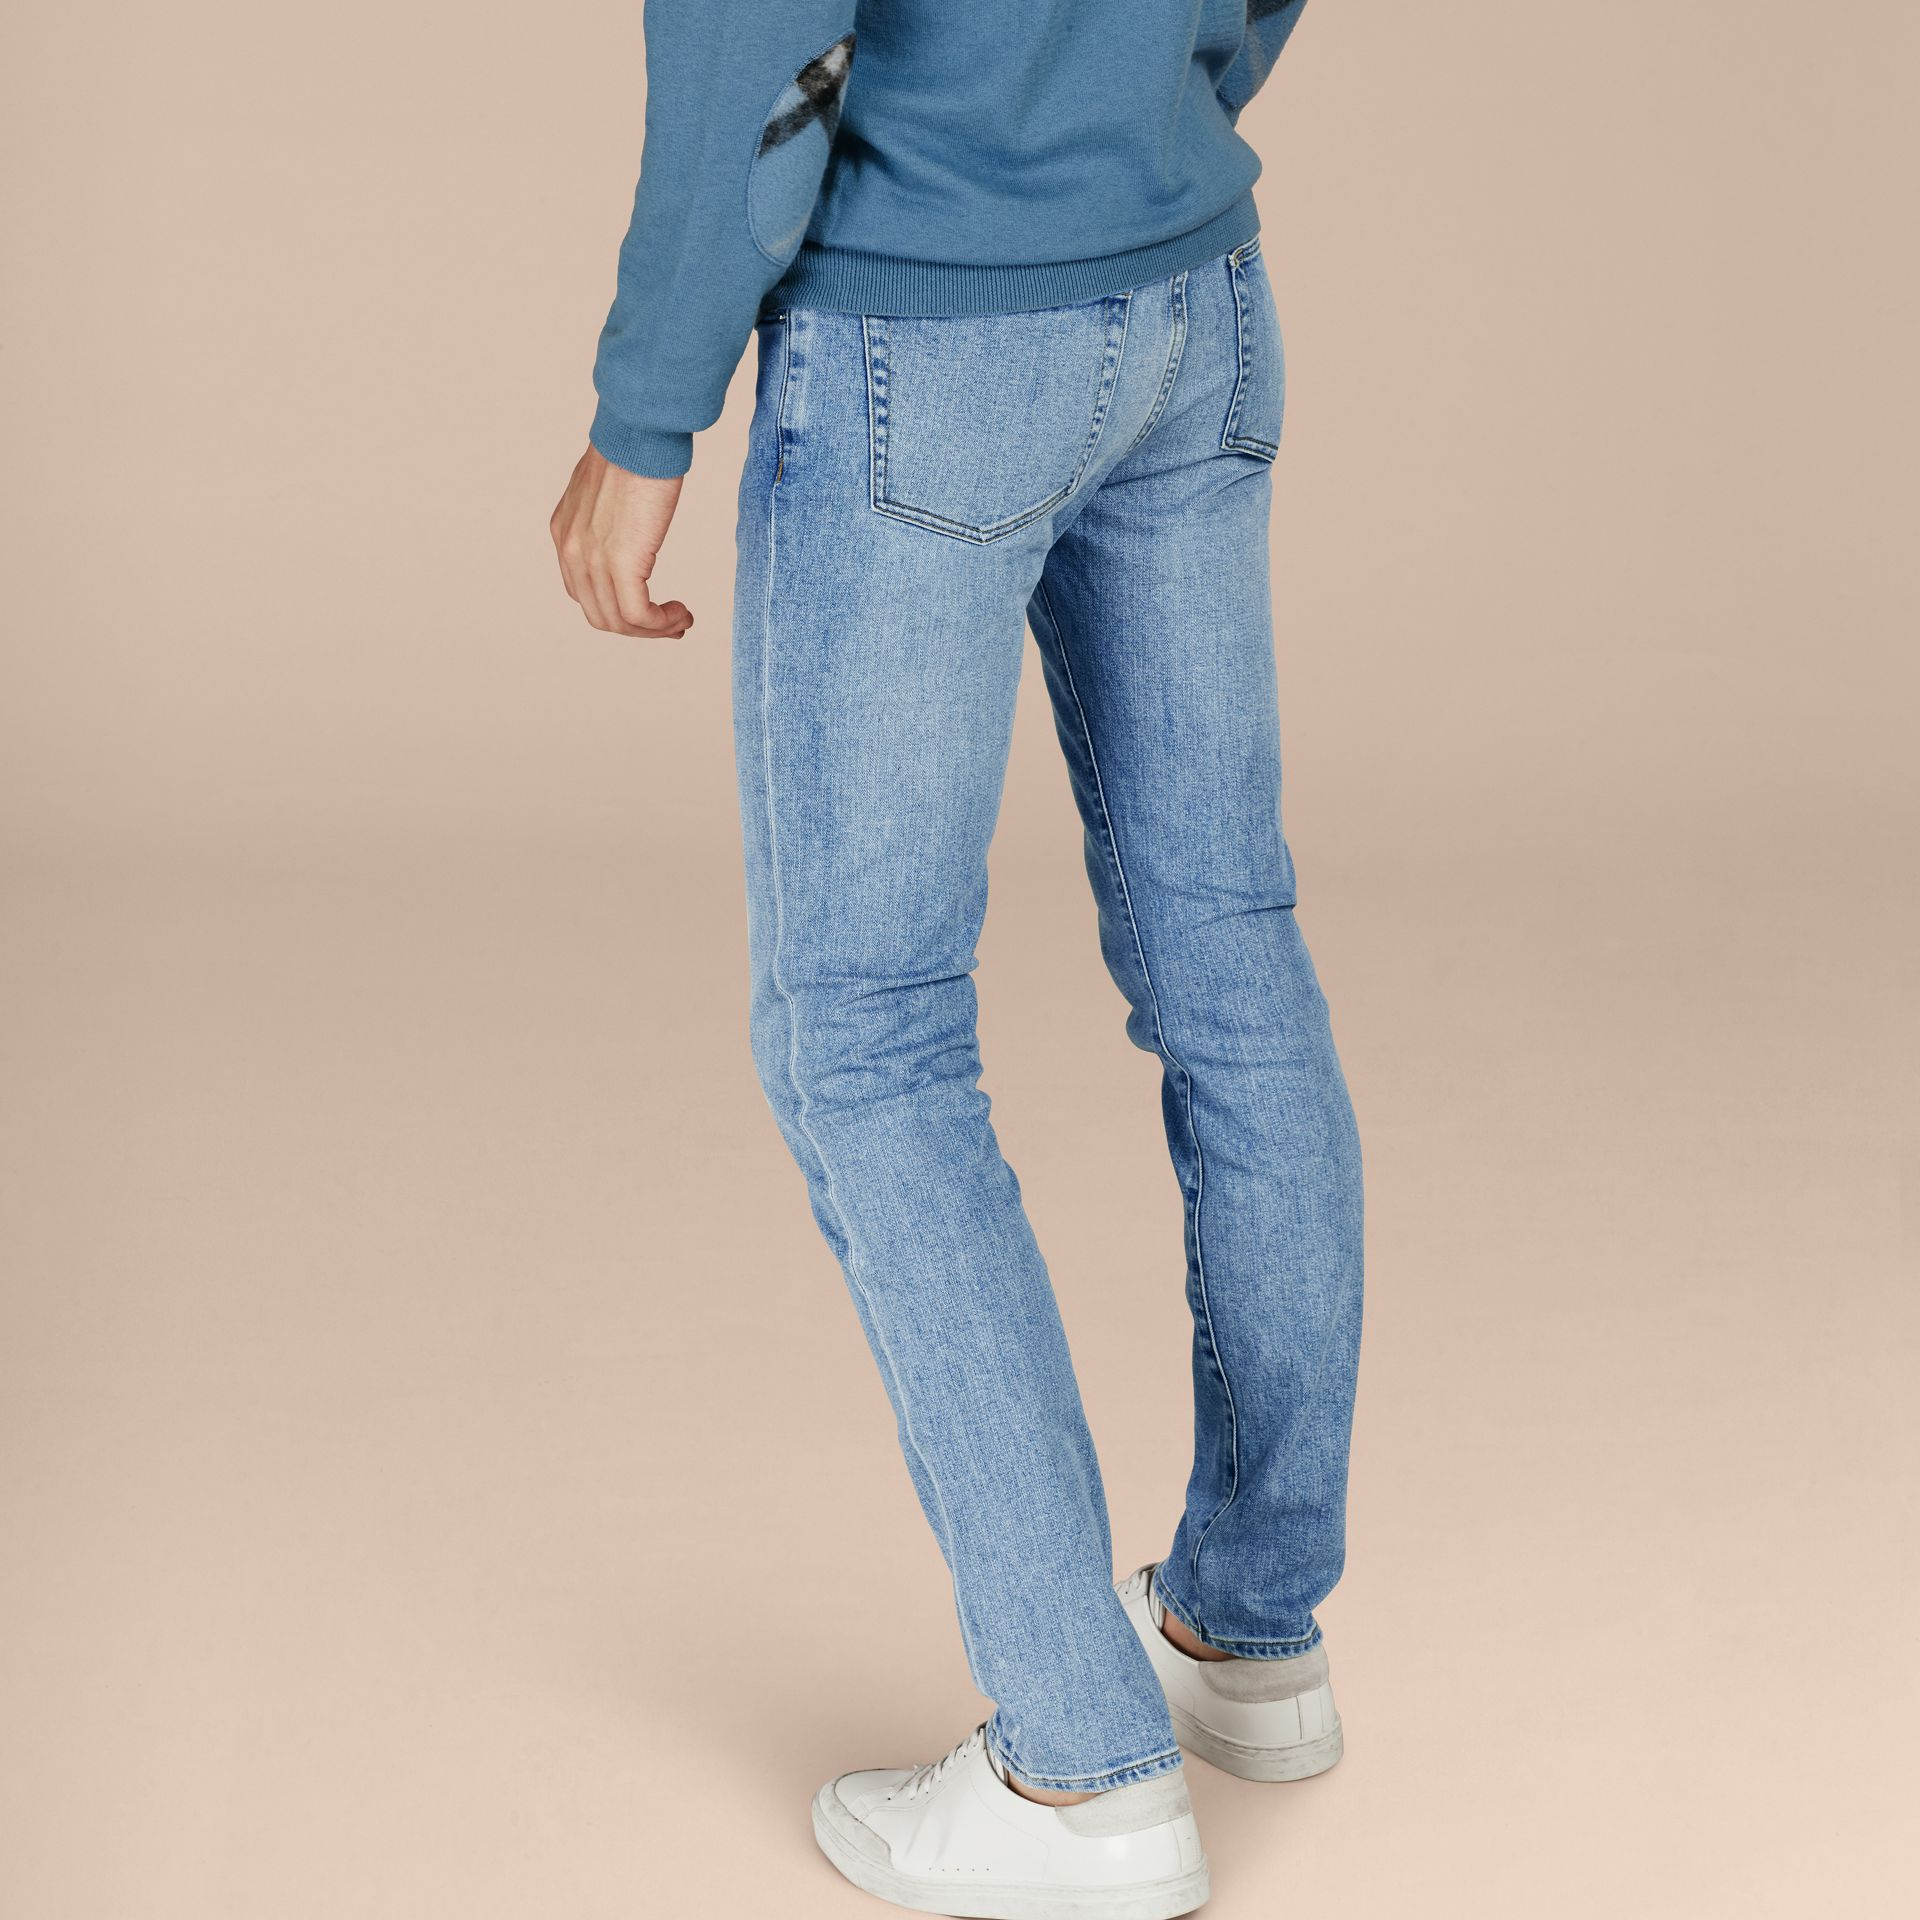 Indigo clair Jean slim stretch en denim japonais ultra-confortable - photo de la galerie 7